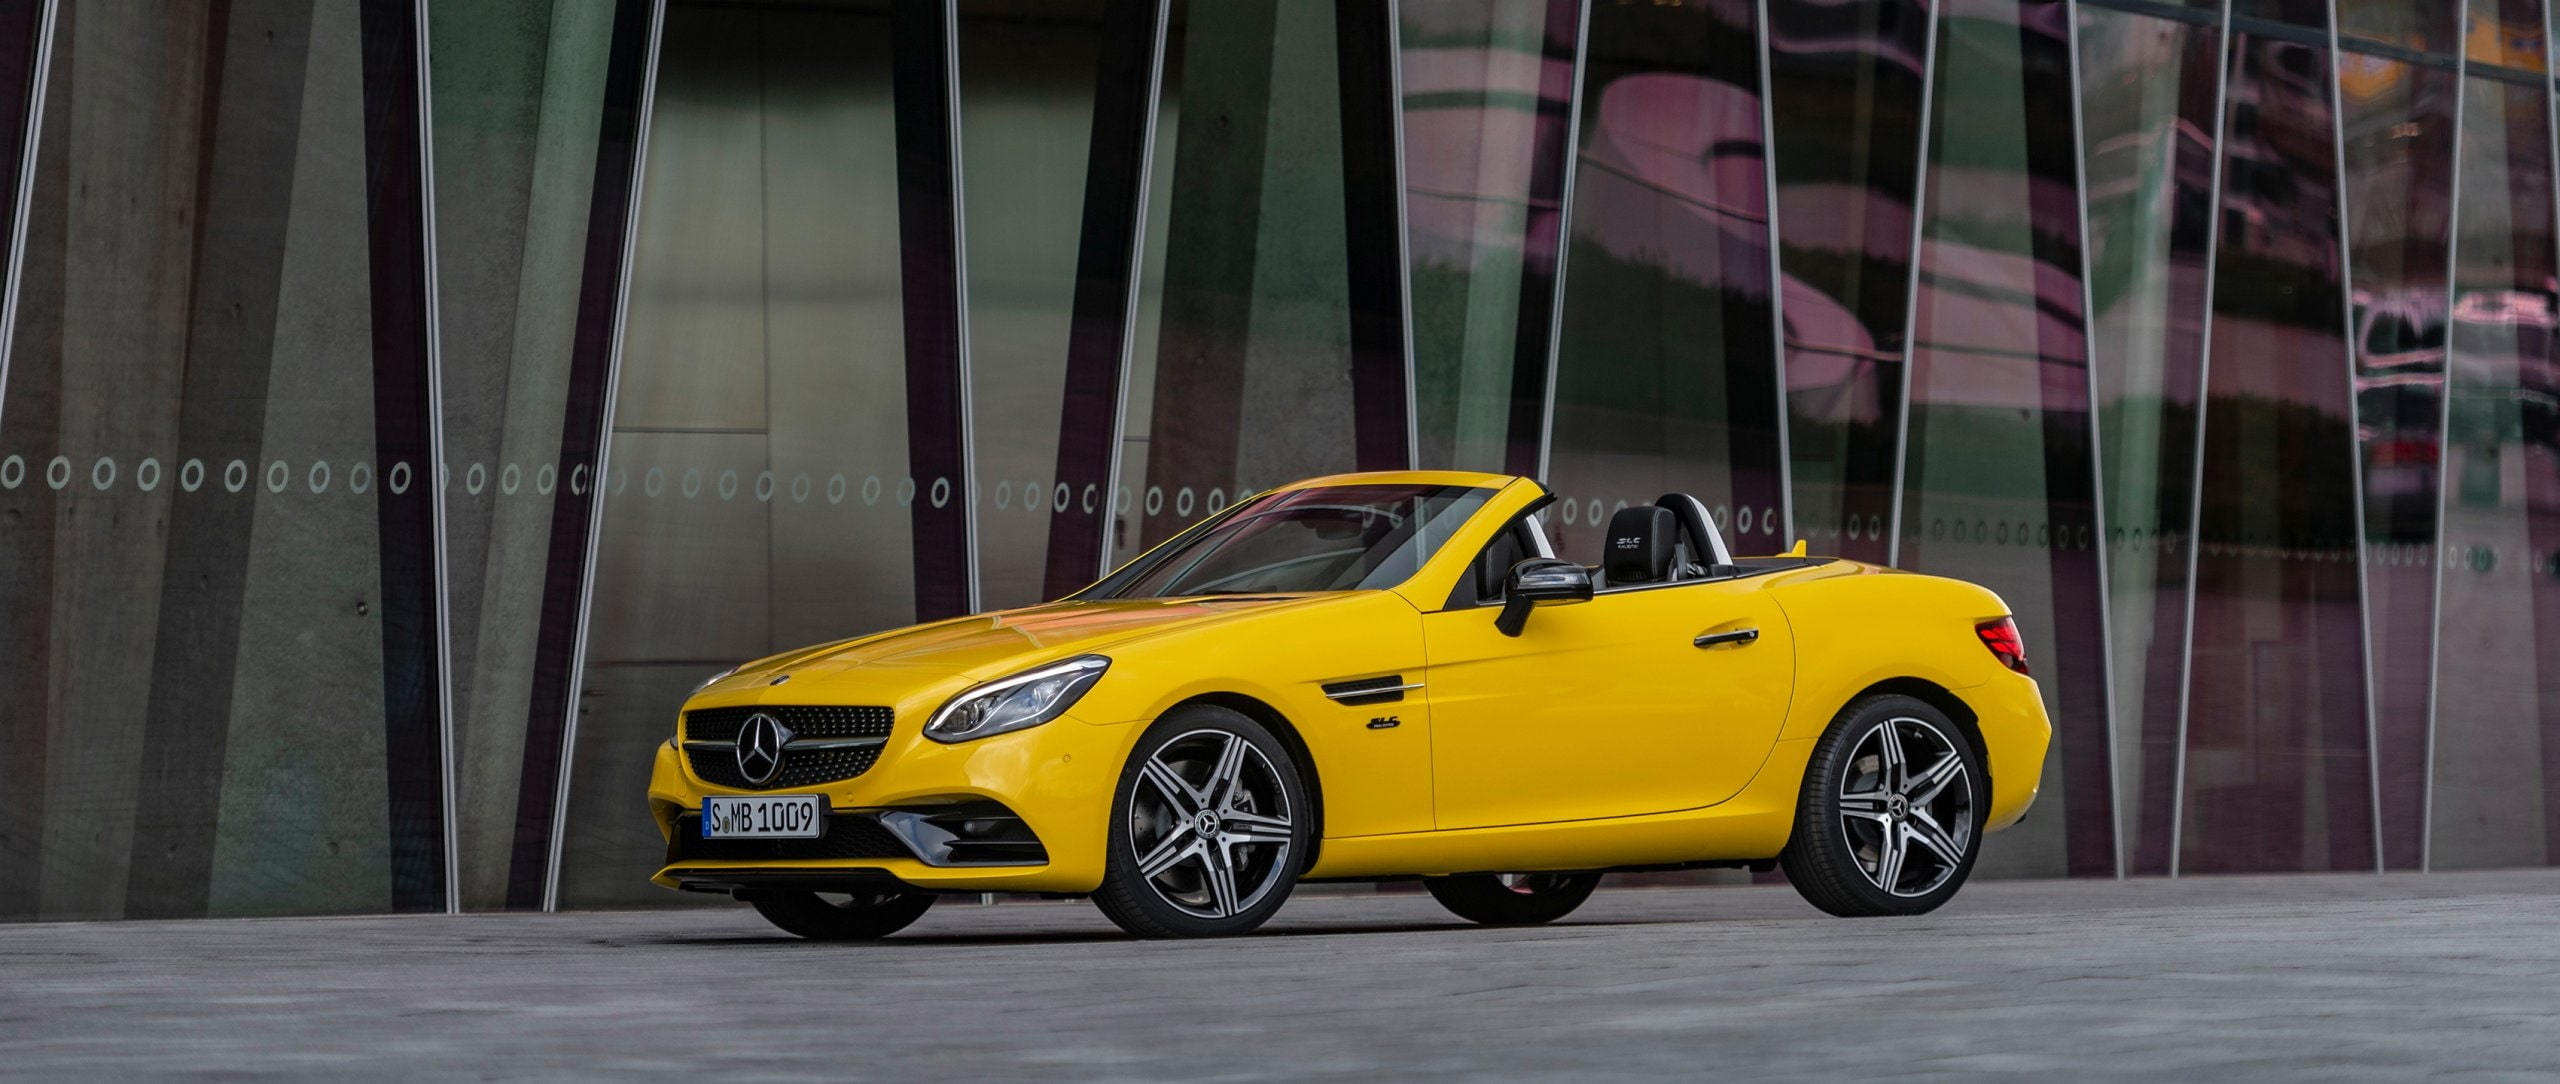 Mercedes-Benz SLC 300 Final Edition (R 172) in sun yellow with Night Package and AMG Line Exterior.